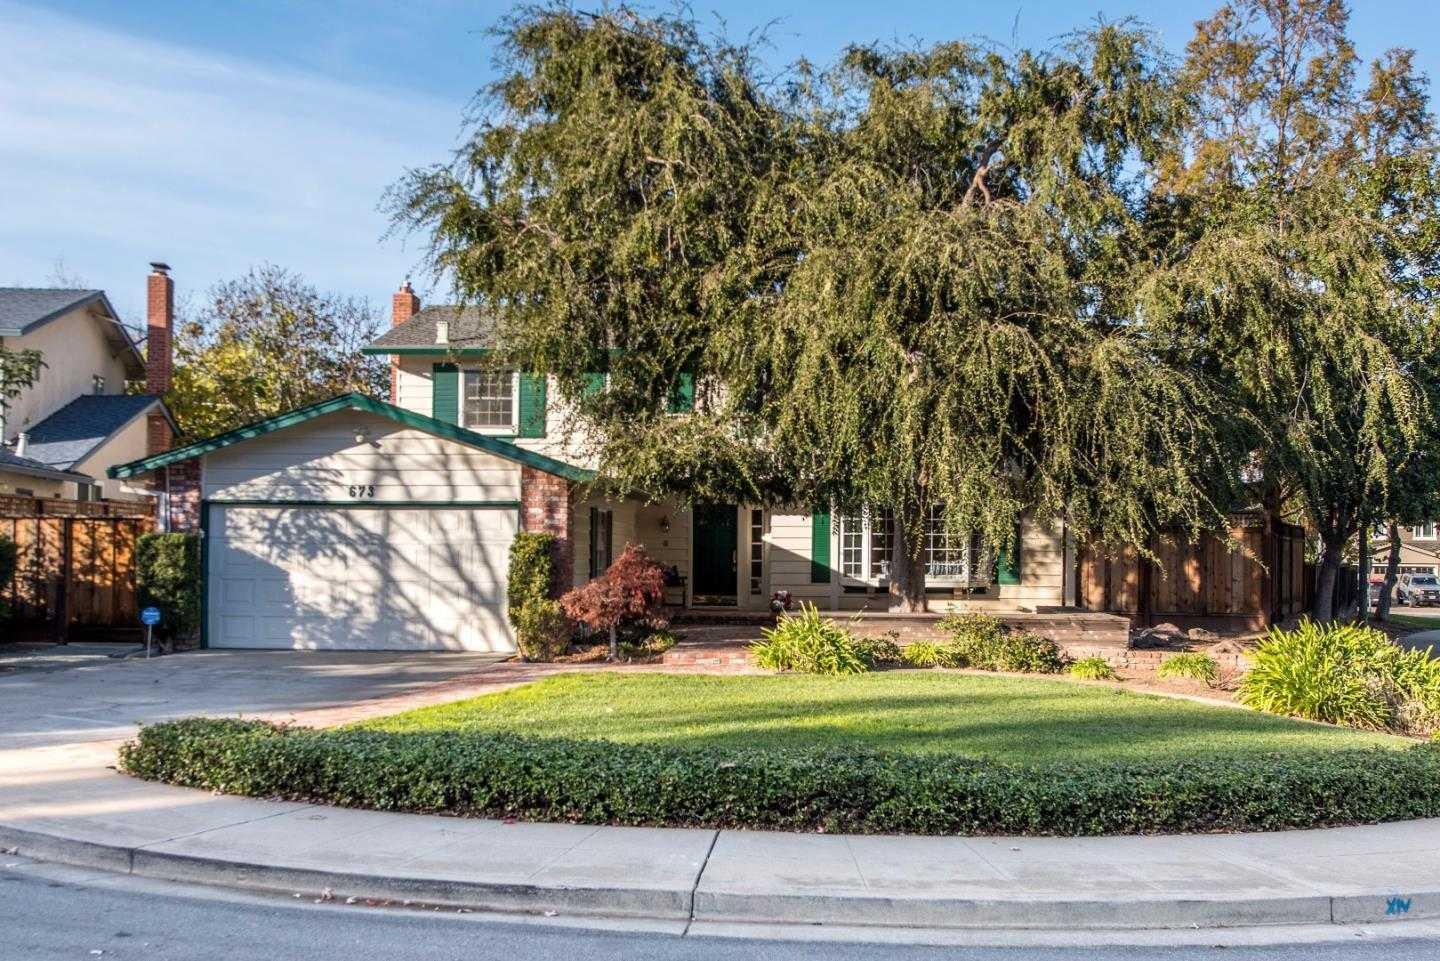 $1,995,000 - 4Br/3Ba -  for Sale in Sunnyvale